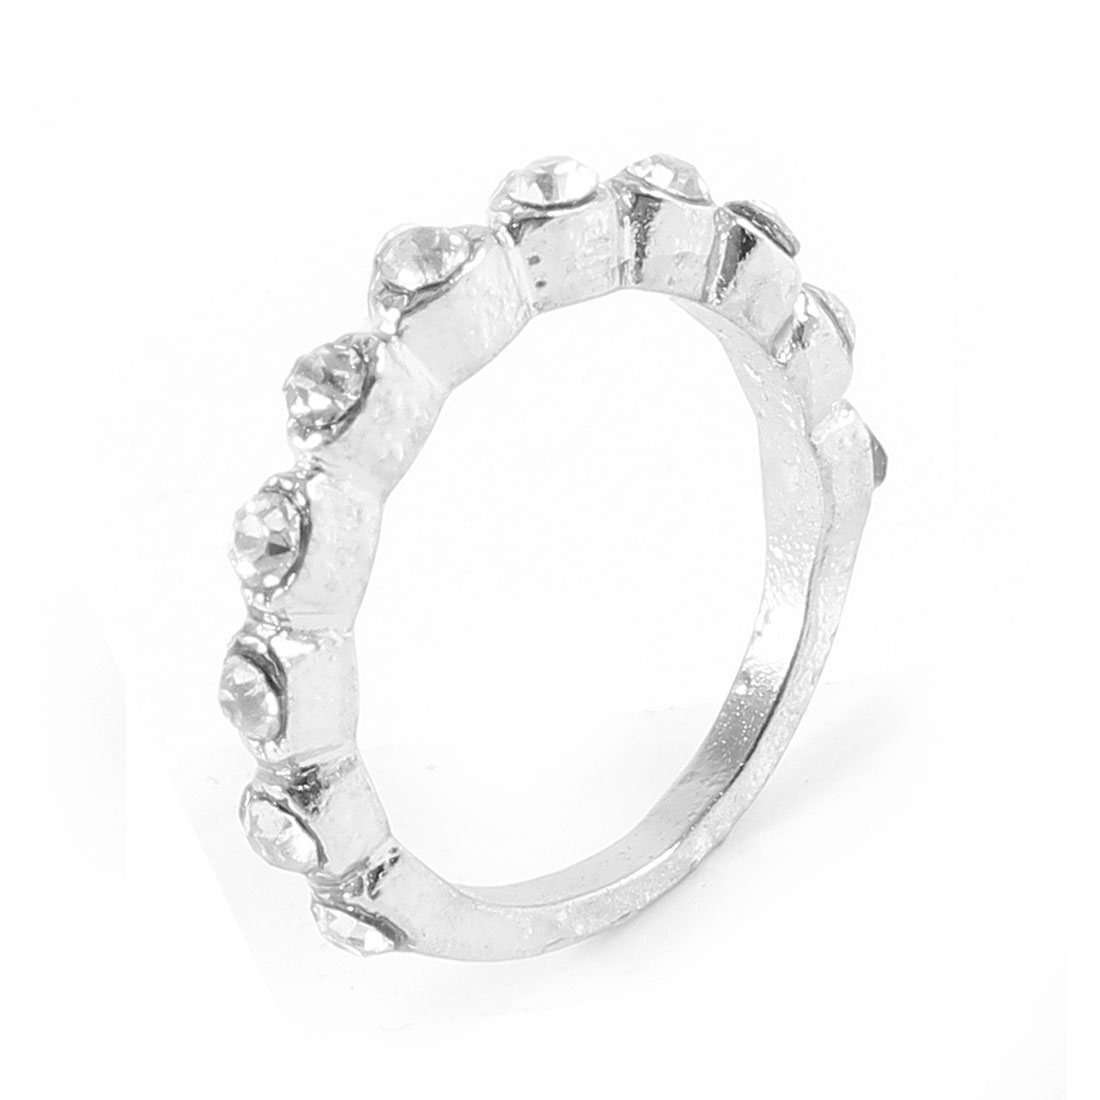 Ladies Glitter Shiny Rhinestone Inlaid Silver Tone Metal Finger Ring Gift